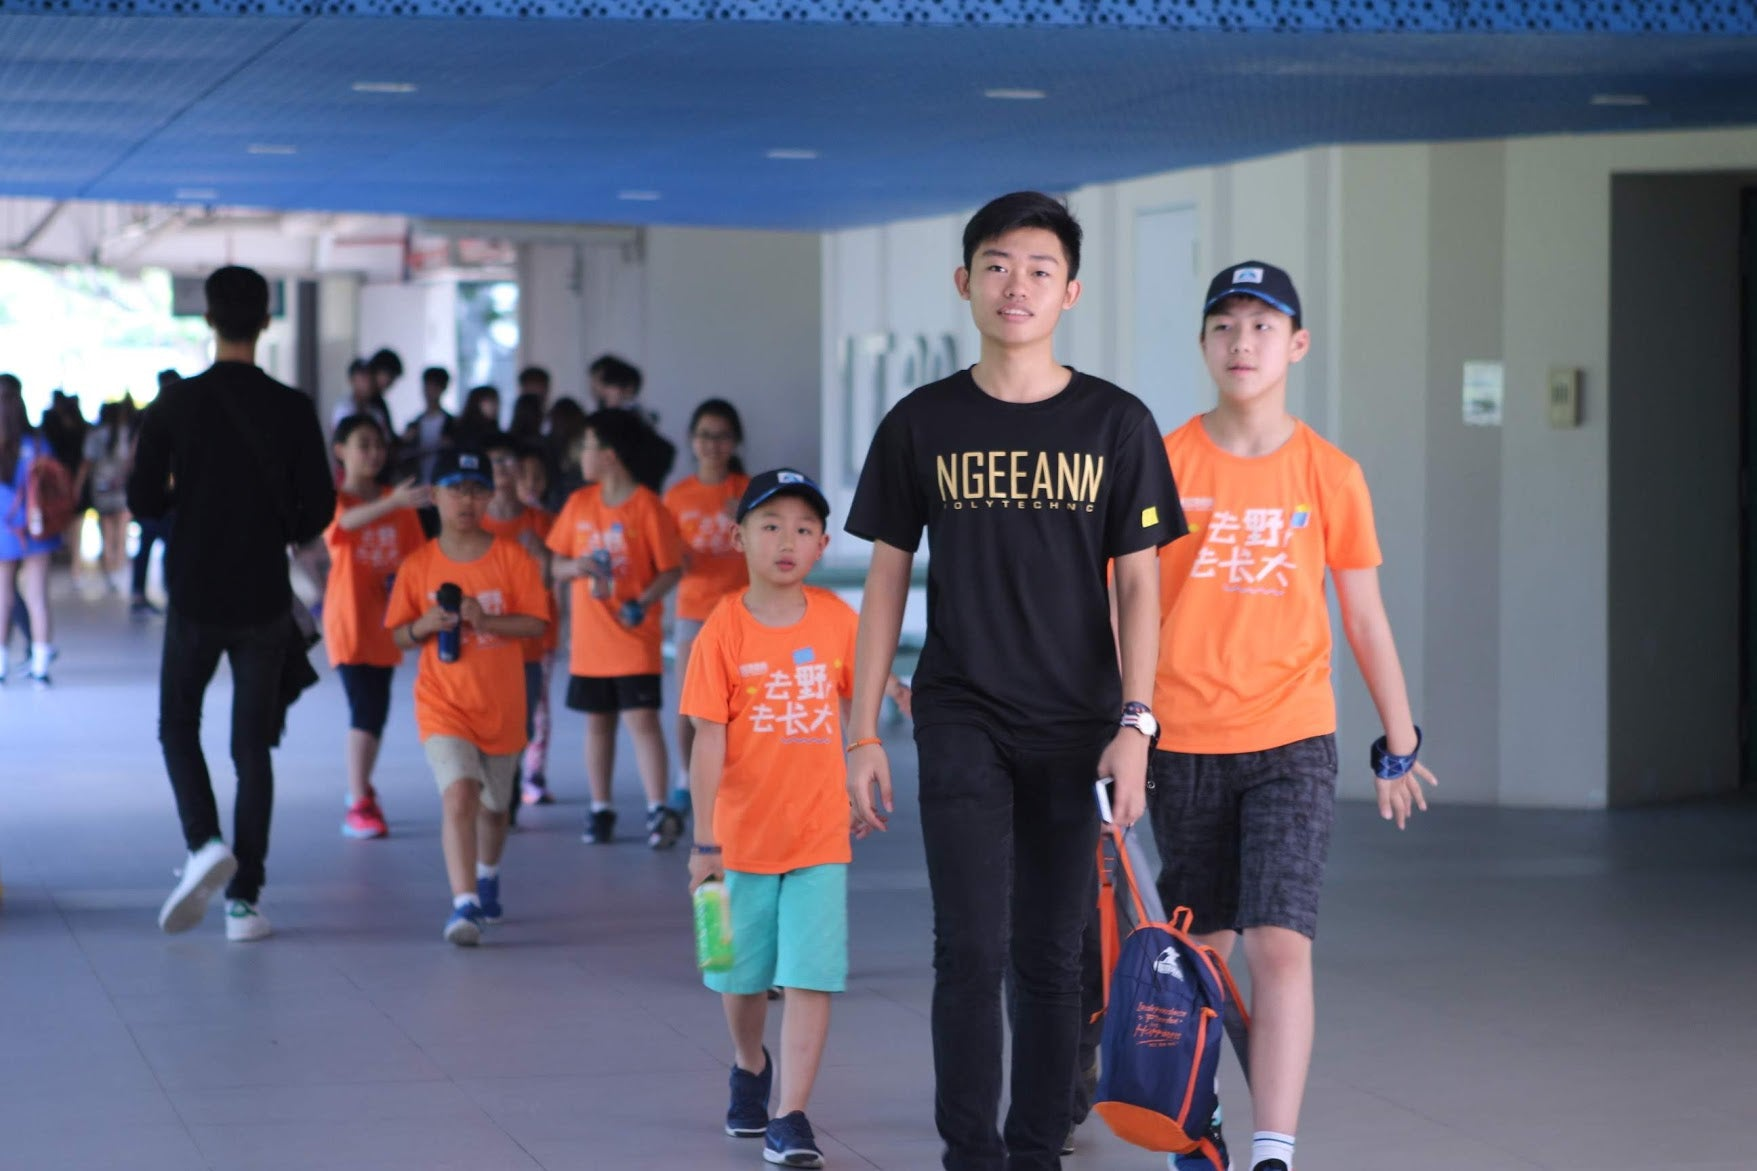 singapore education students in school